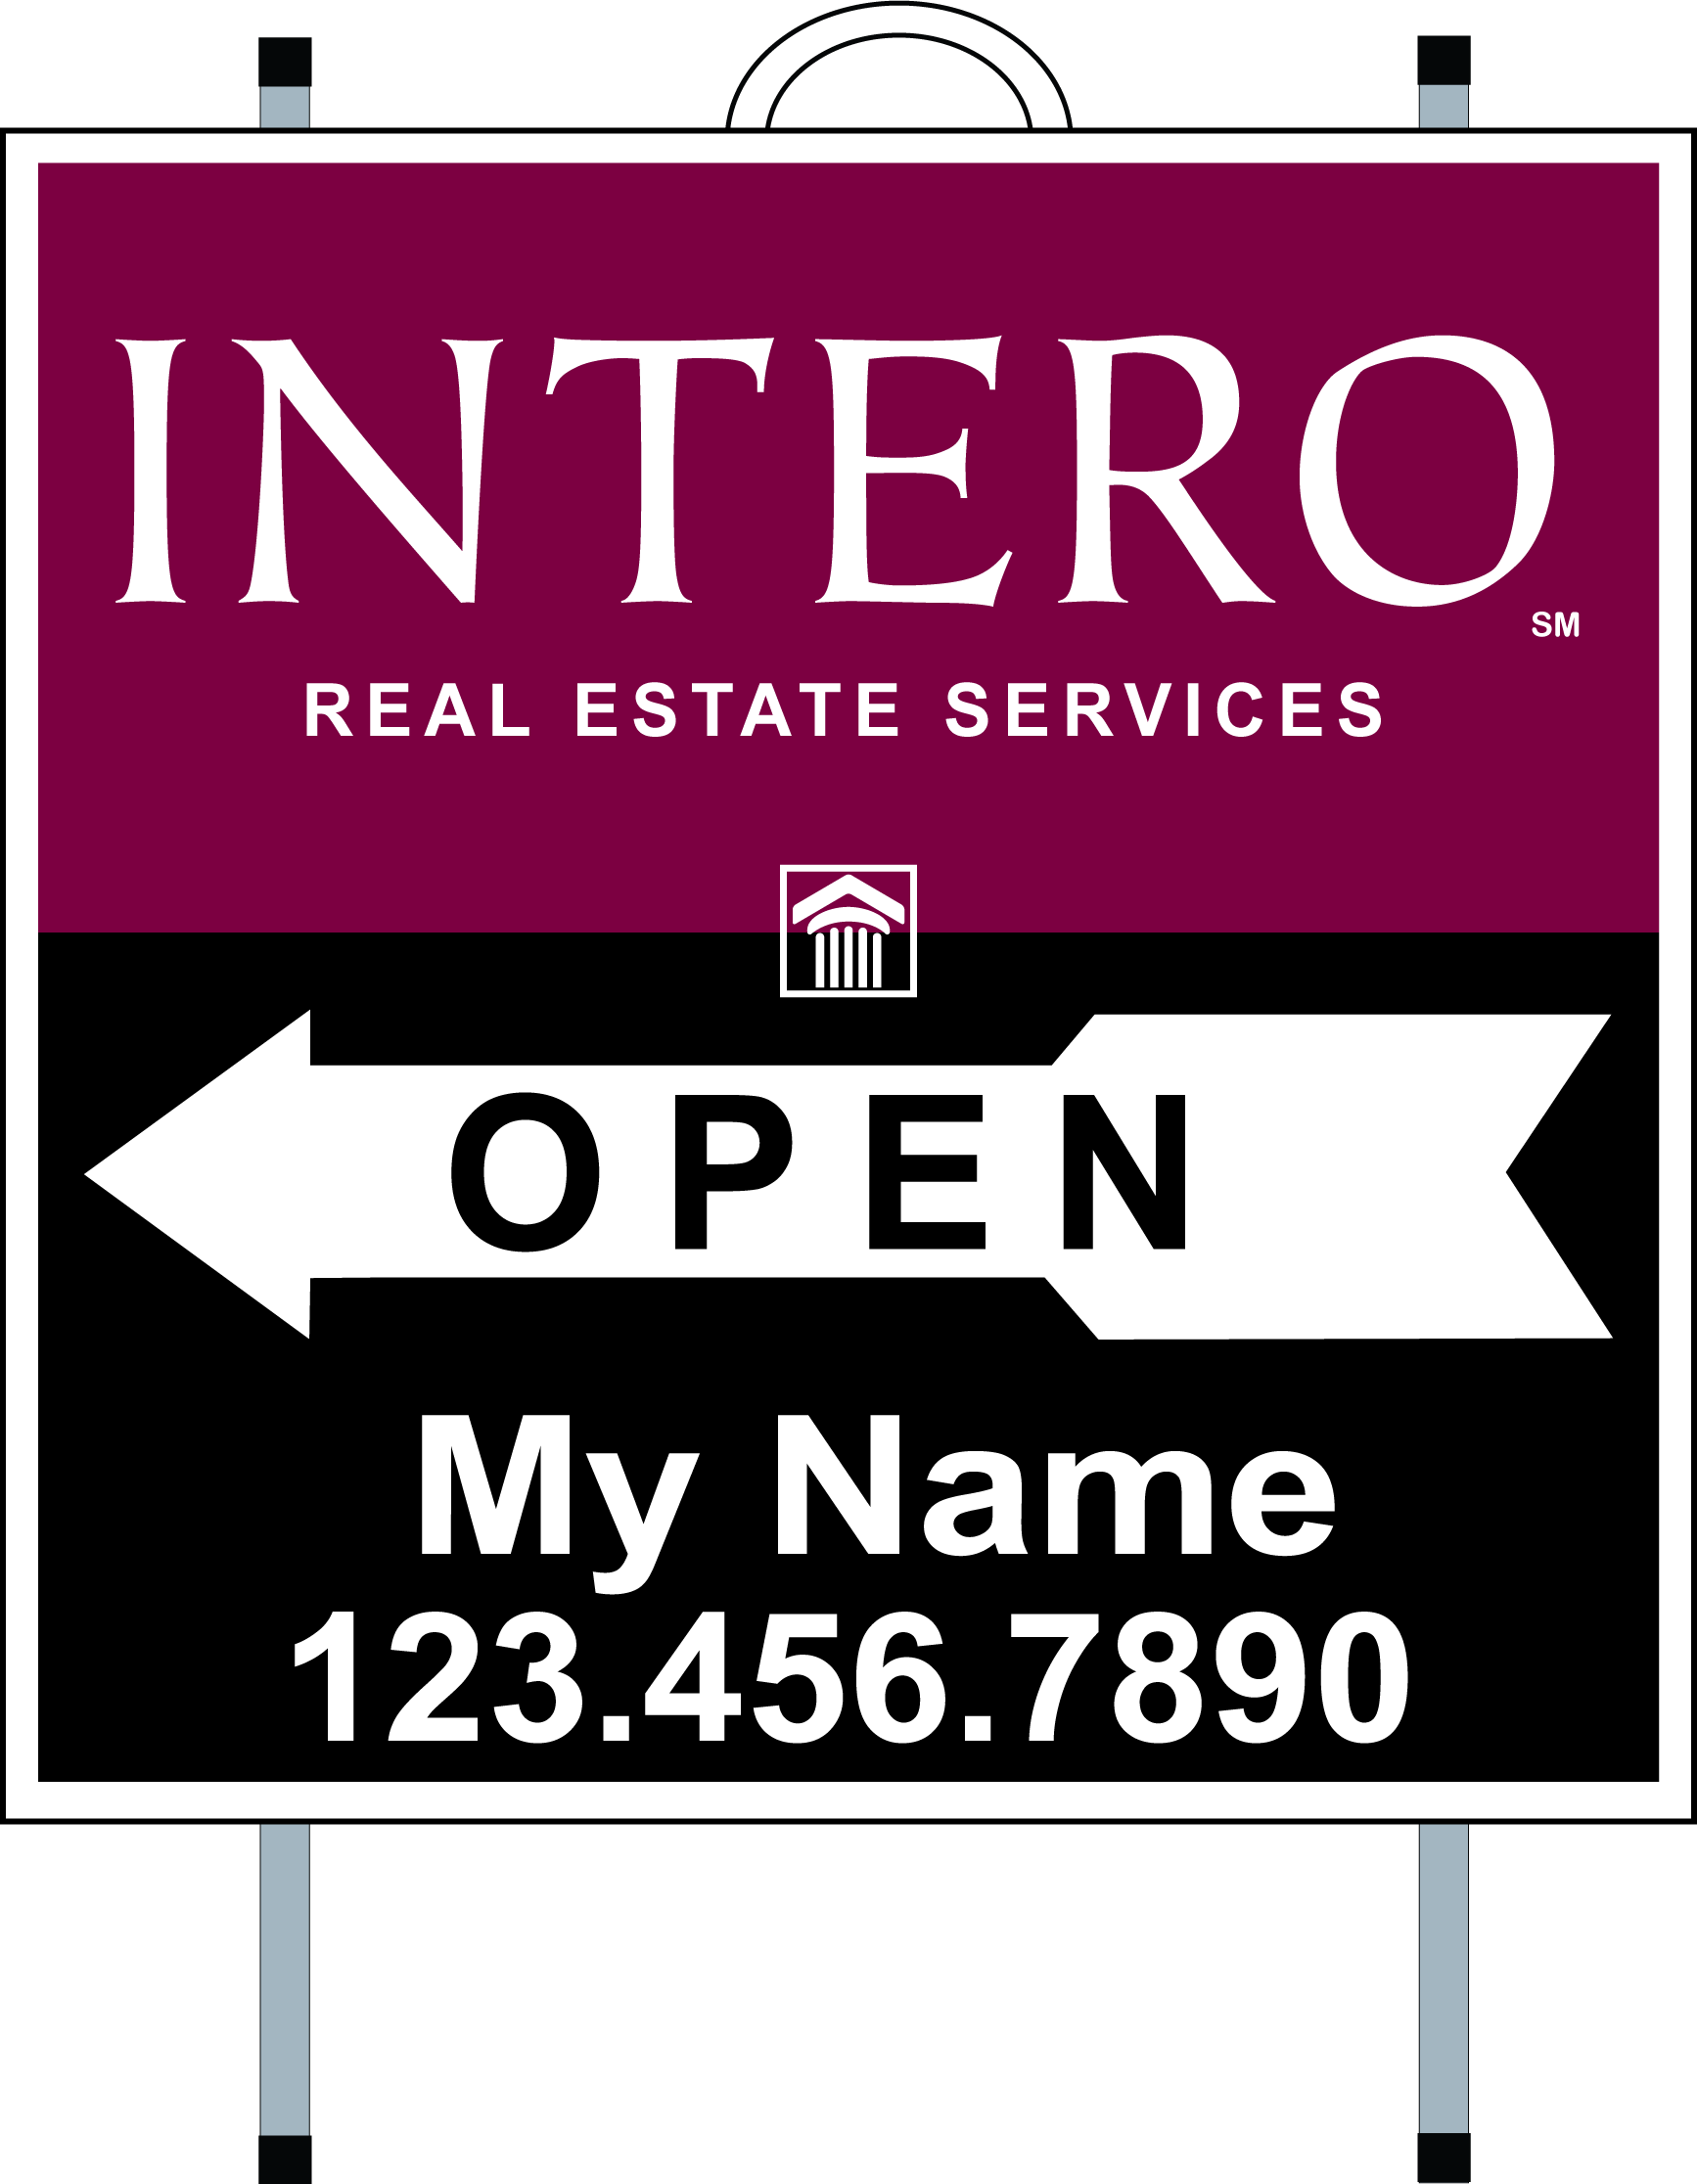 Intero Real Estate Services Real Estate Signs Yard